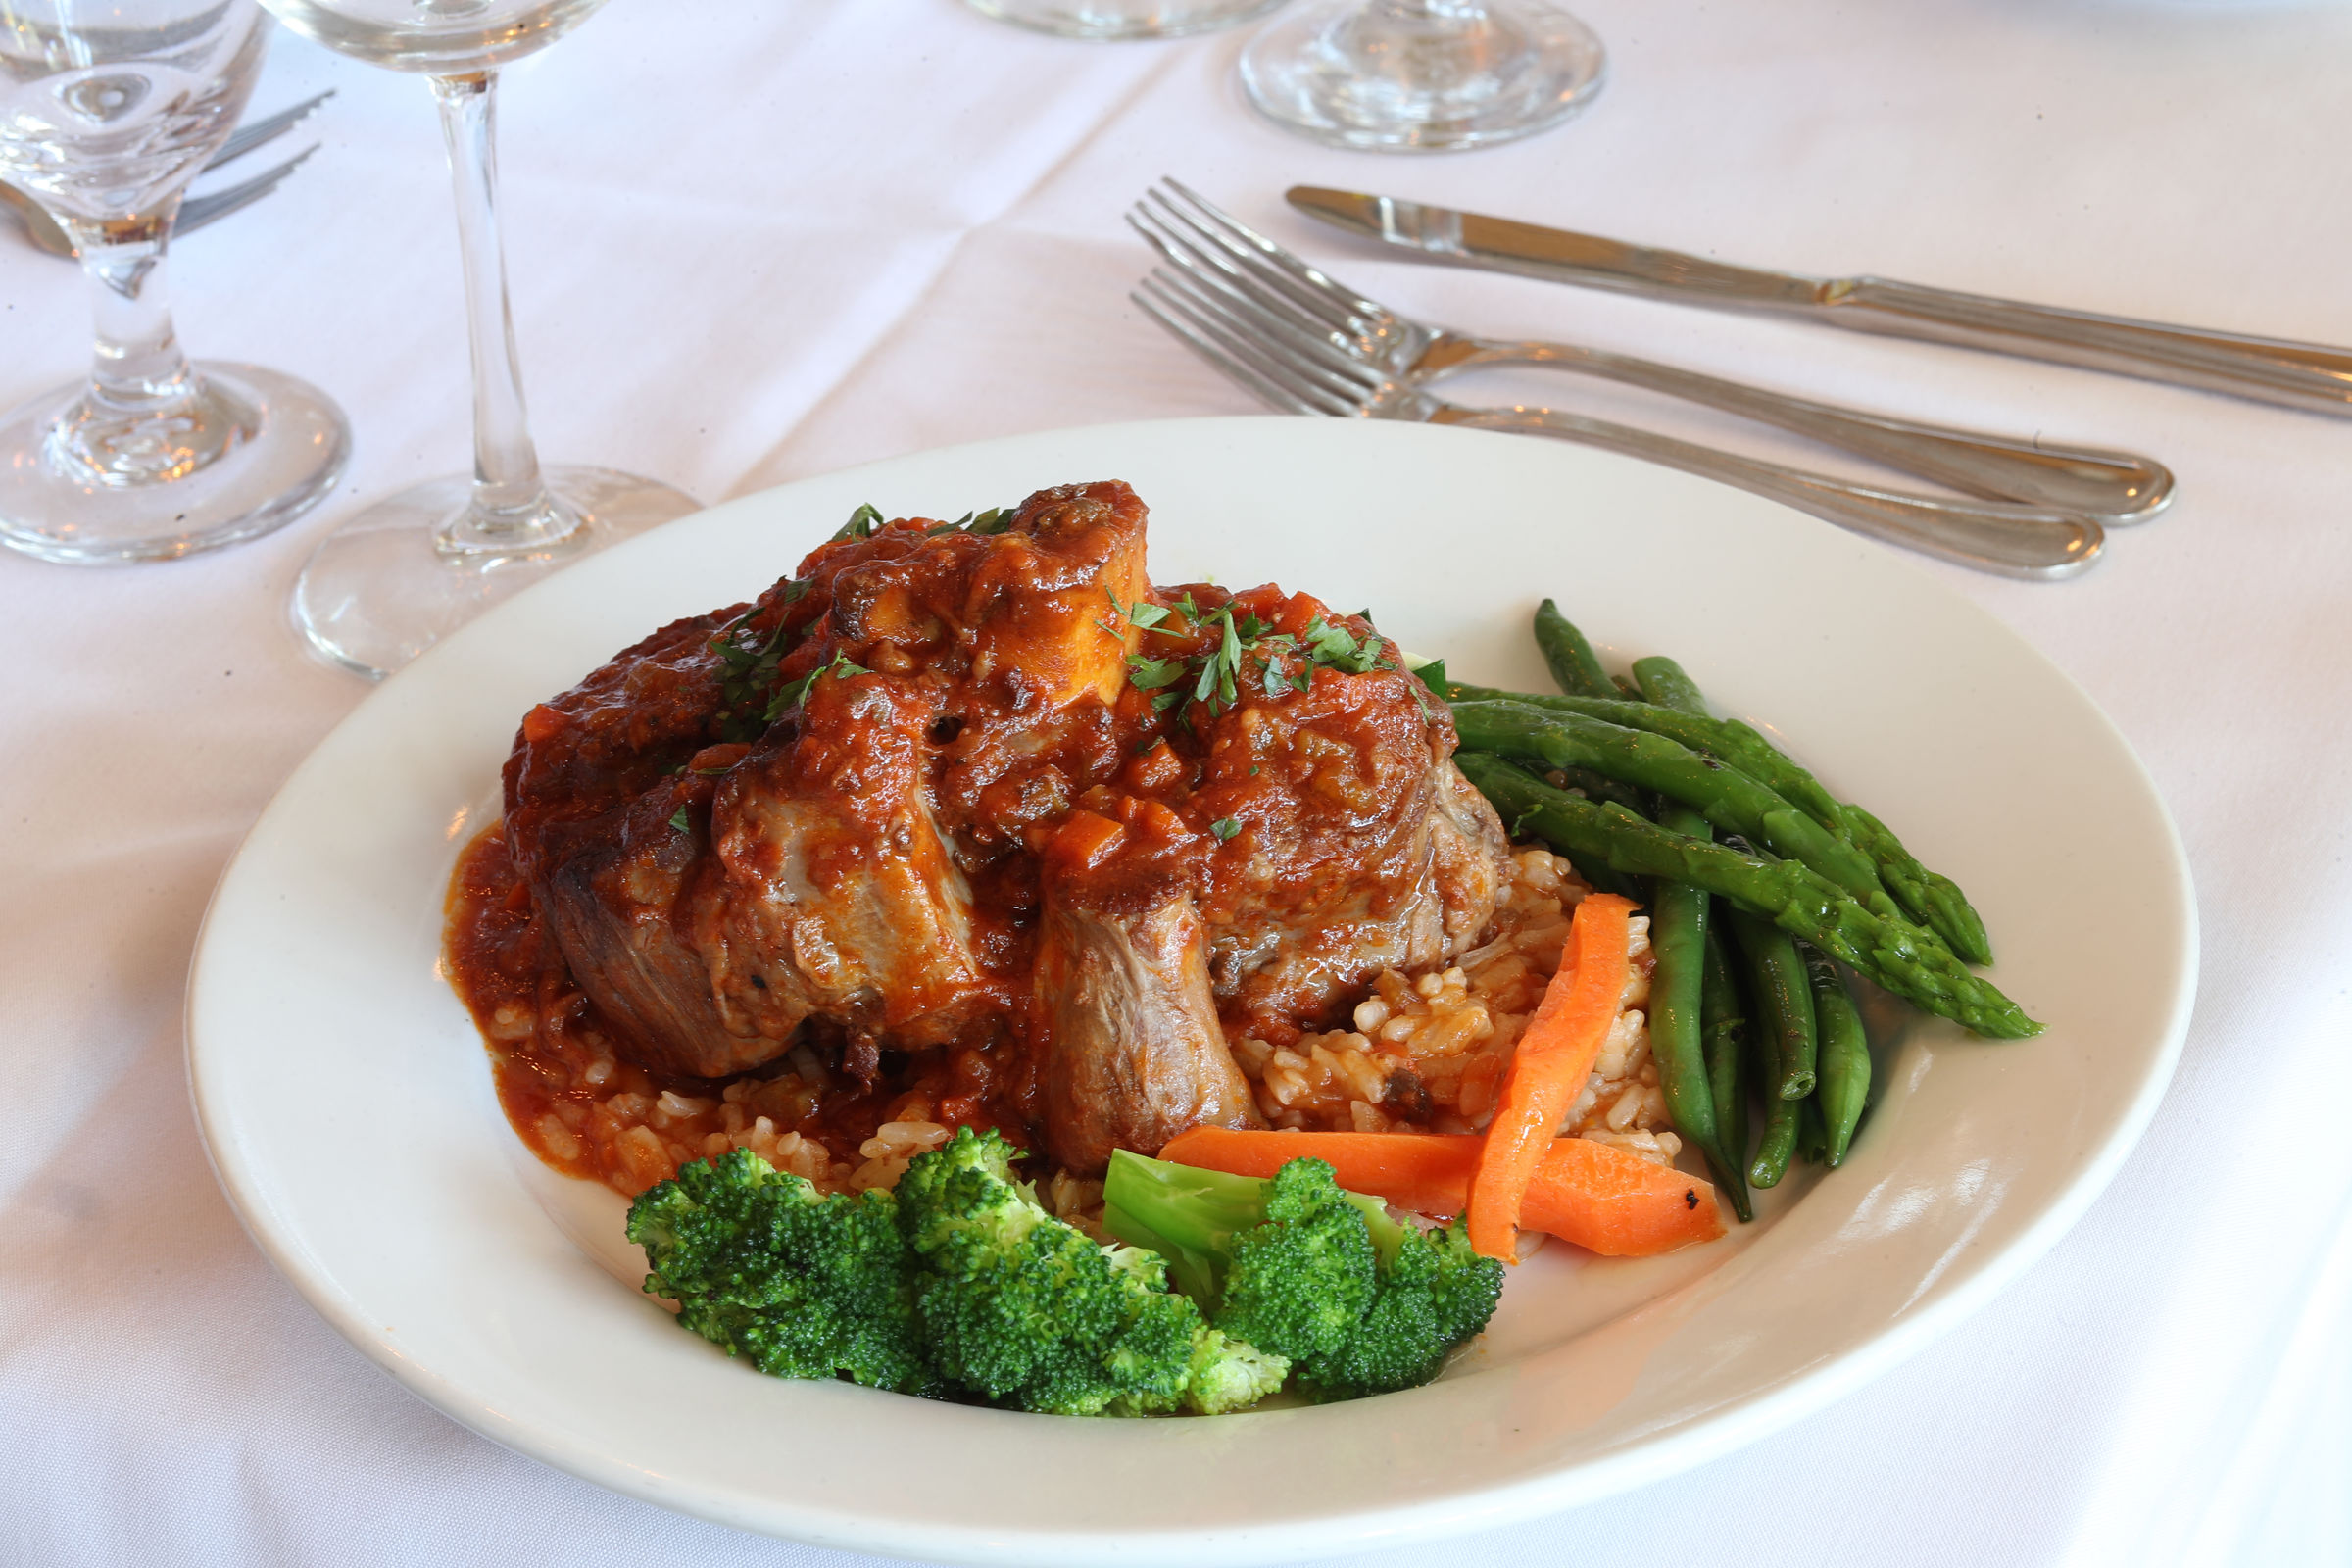 The osso bucco at Po Le.